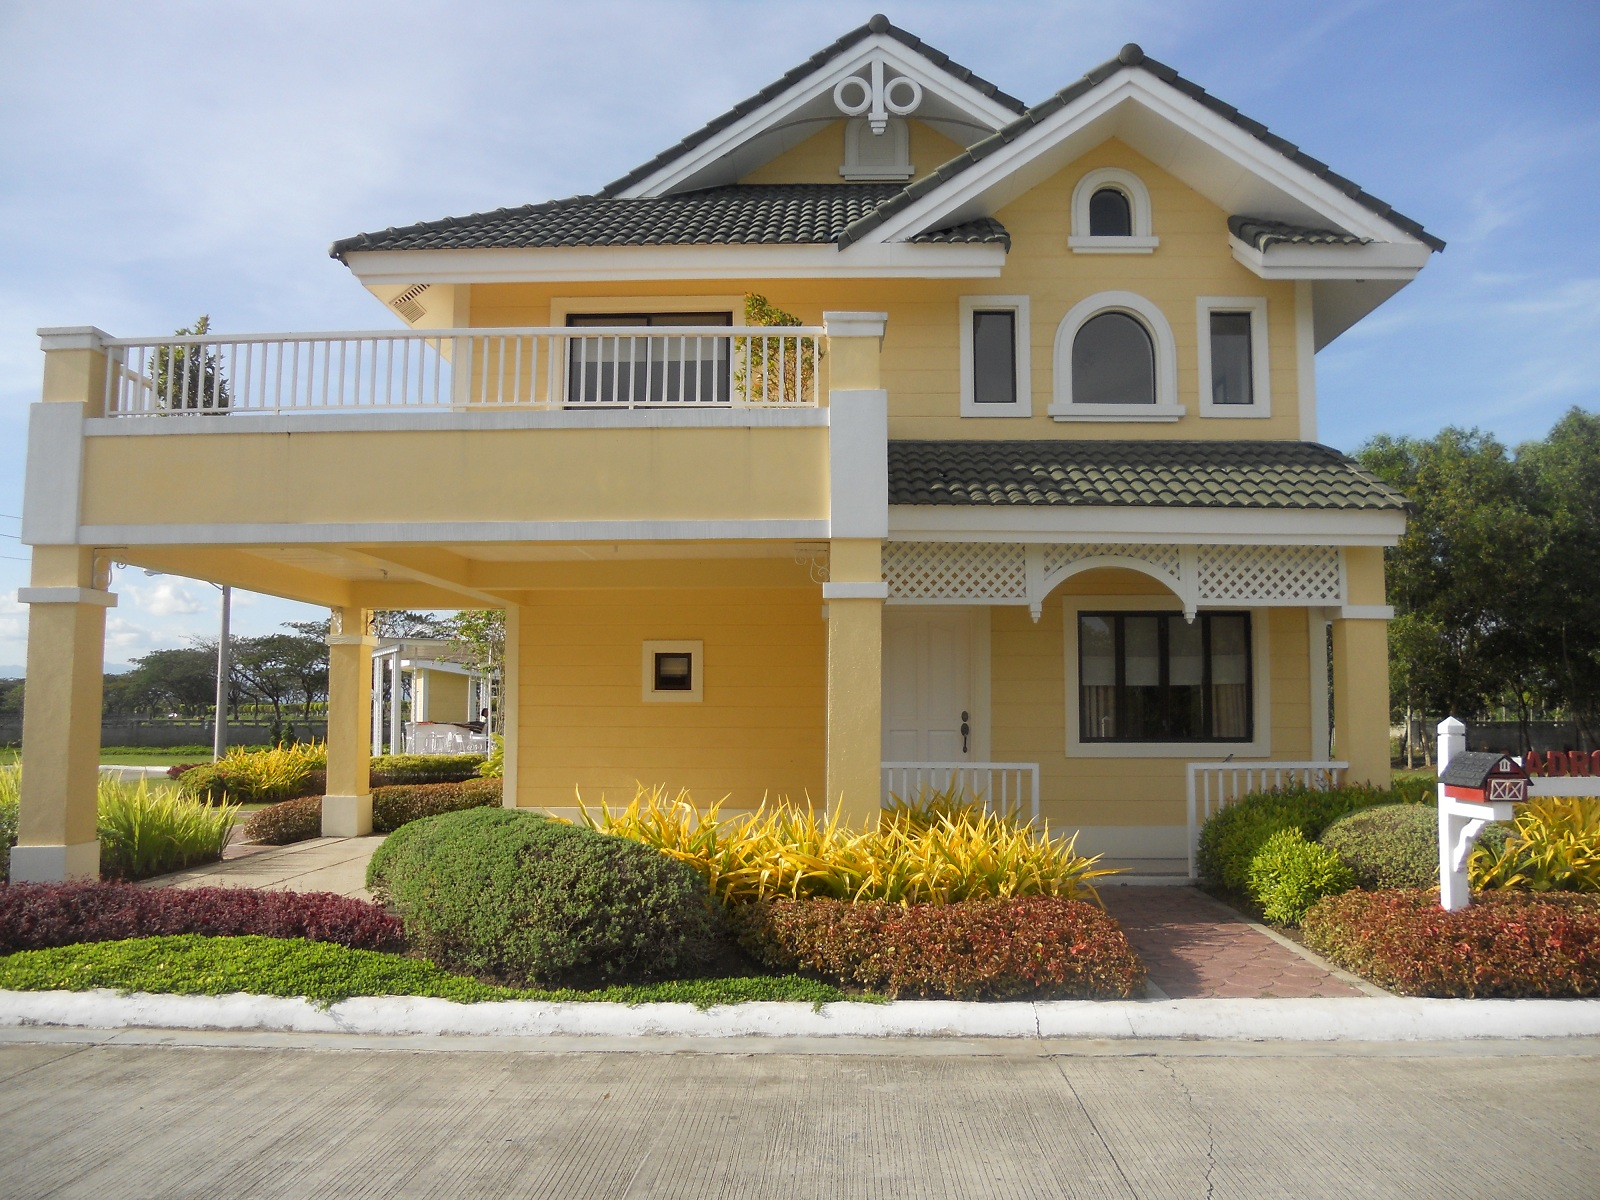 Lladro model house of savannah crest iloilo by camella for Latest model house design